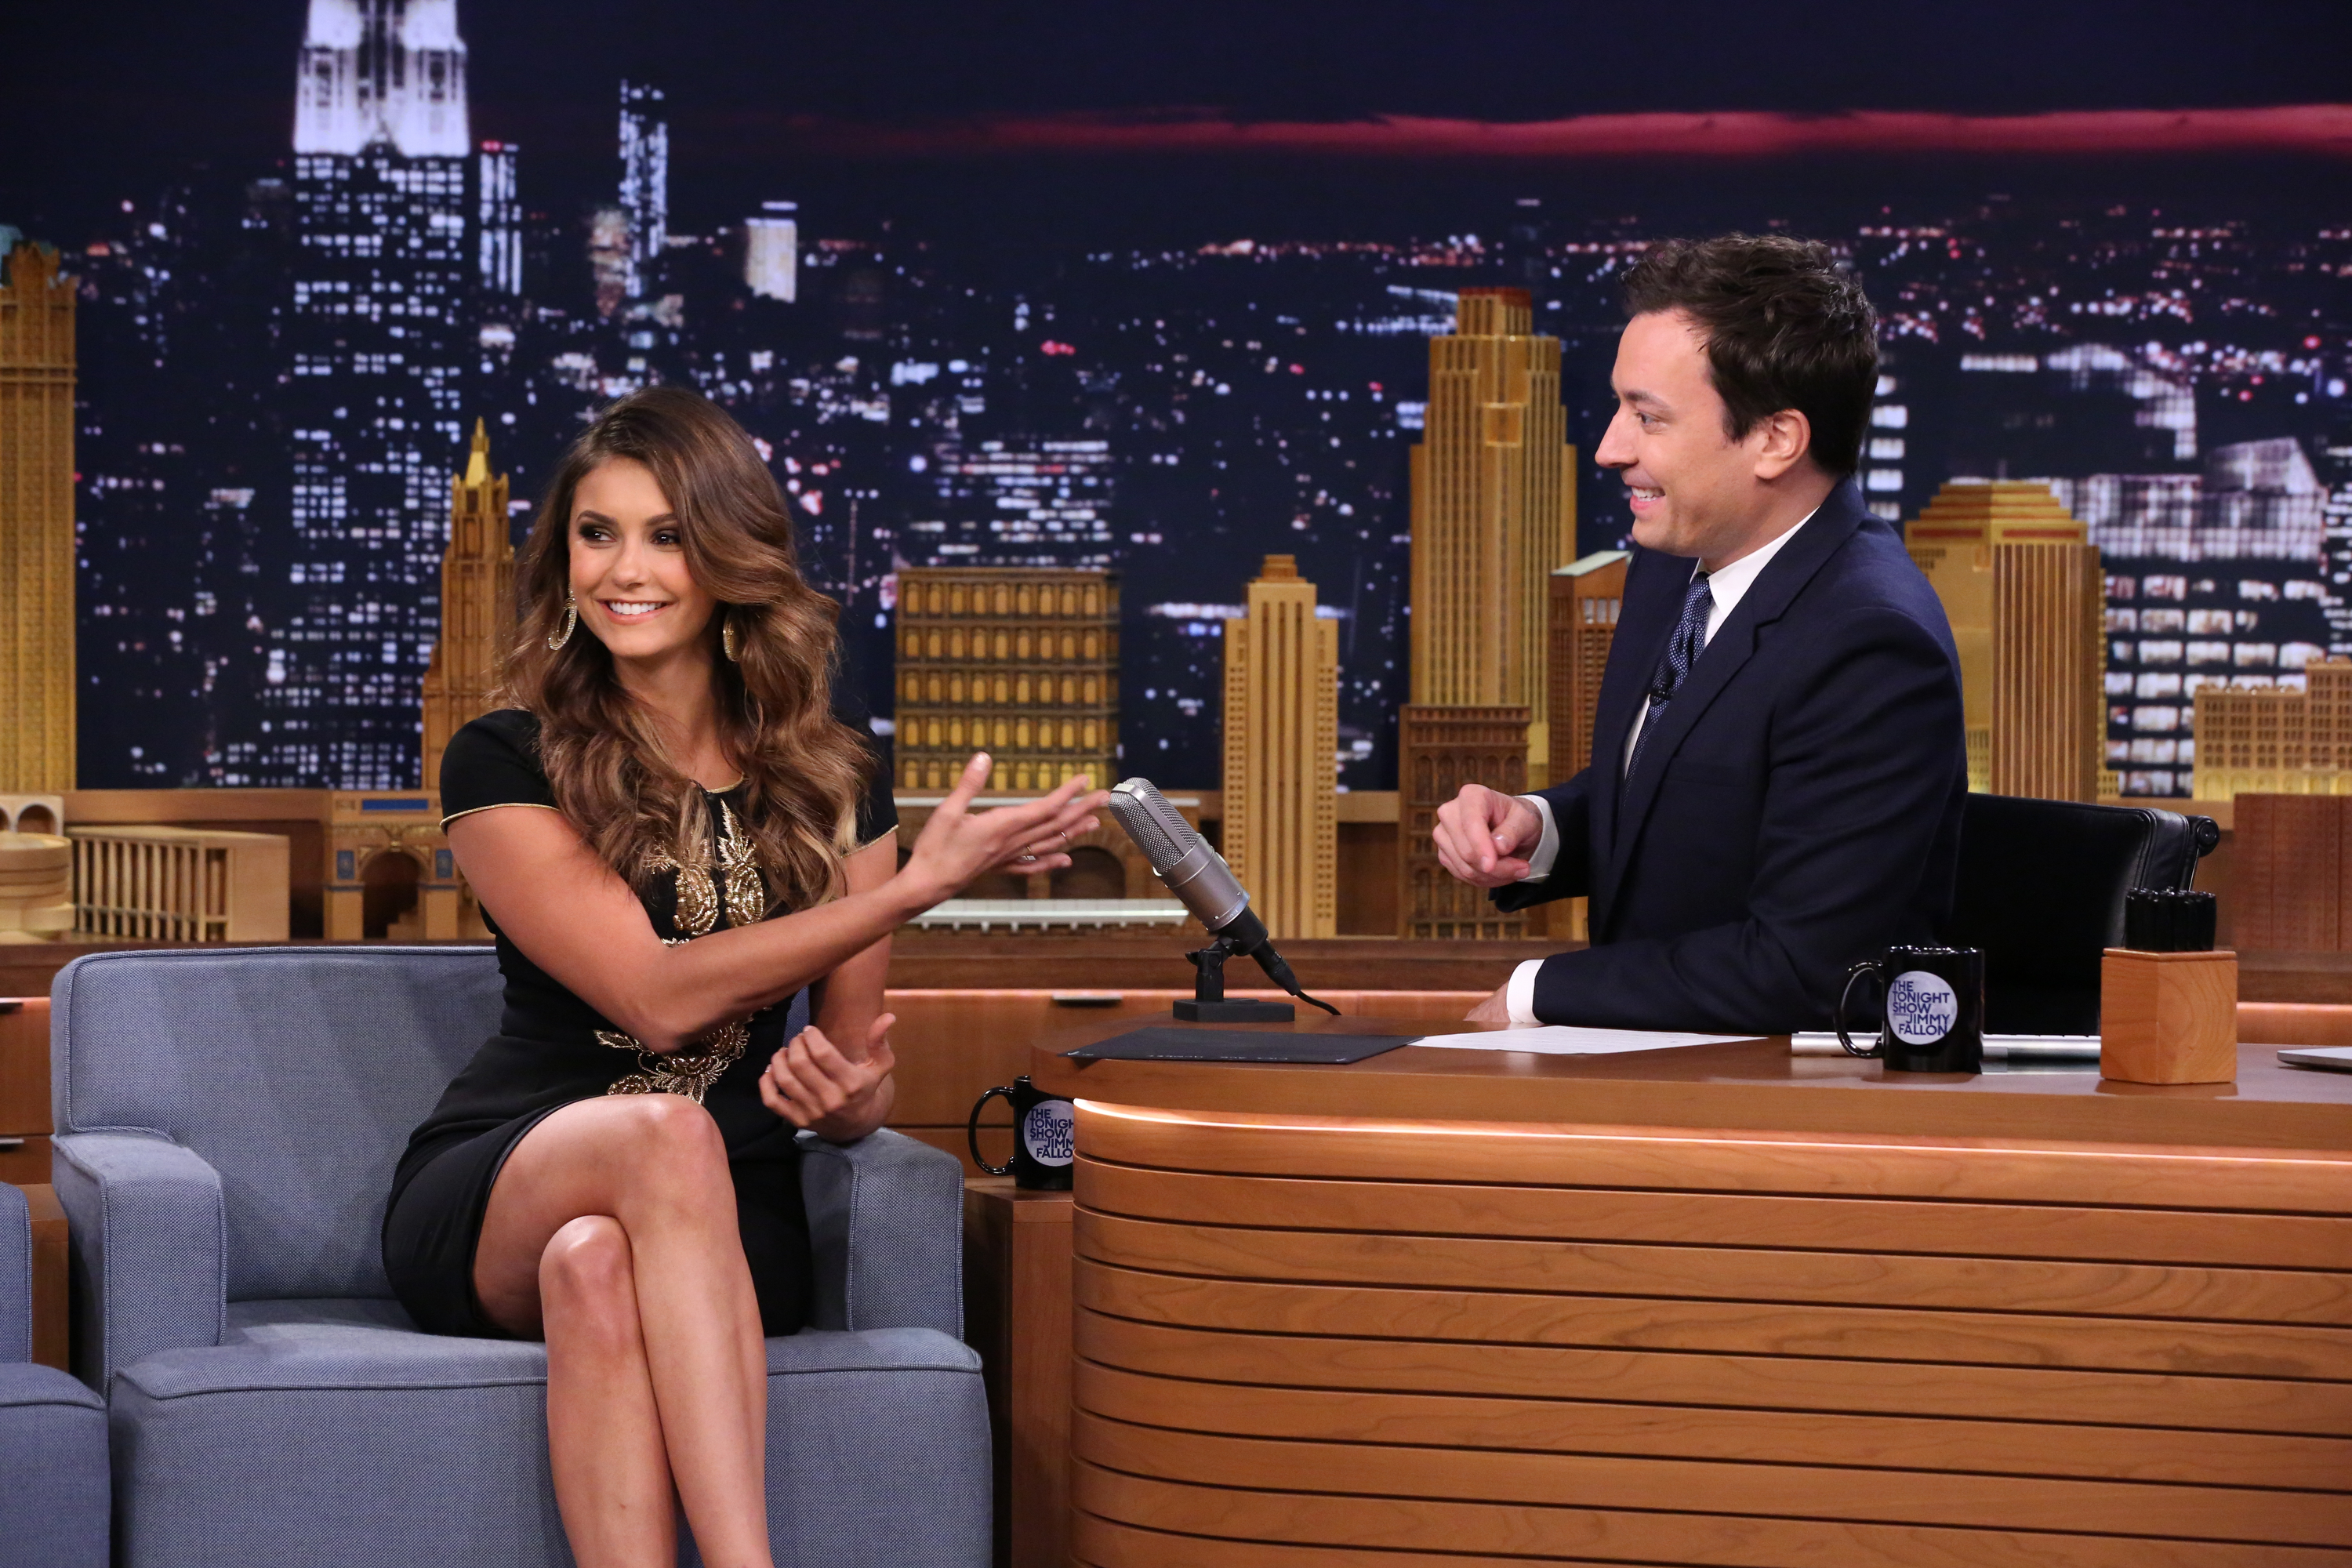 how to assist to jimmy fallon show